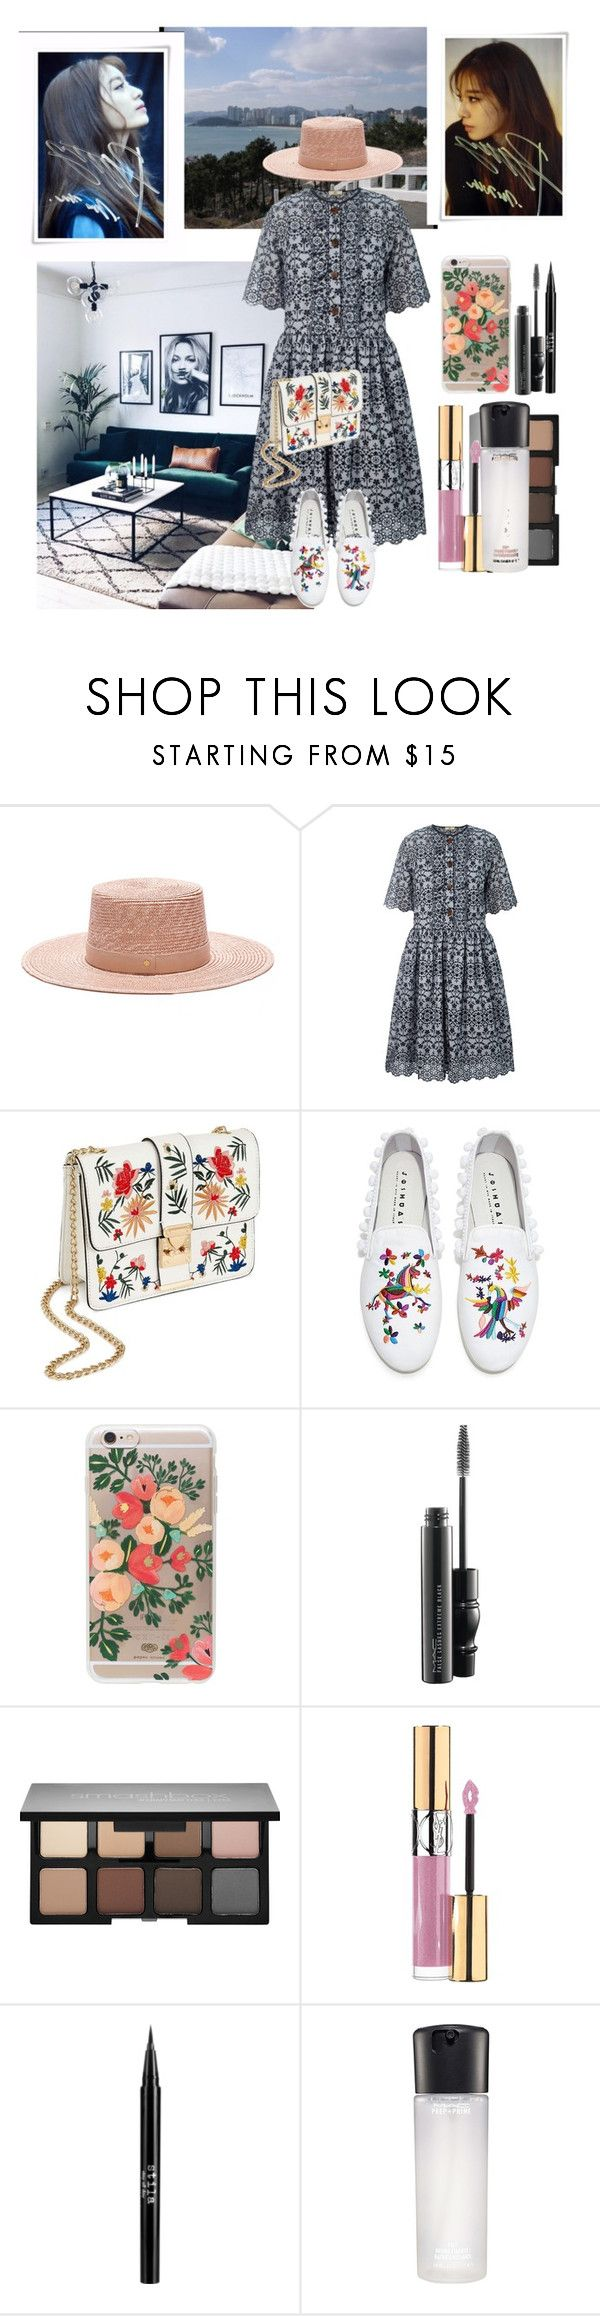 """Park Ji-yeon style"" by wolf-girl97 ❤ liked on Polyvore featuring Orla Kiely, Miss Selfridge, Joshua's, Rifle Paper Co, MAC Cosmetics, Smashbox, Yves Saint Laurent and Stila"